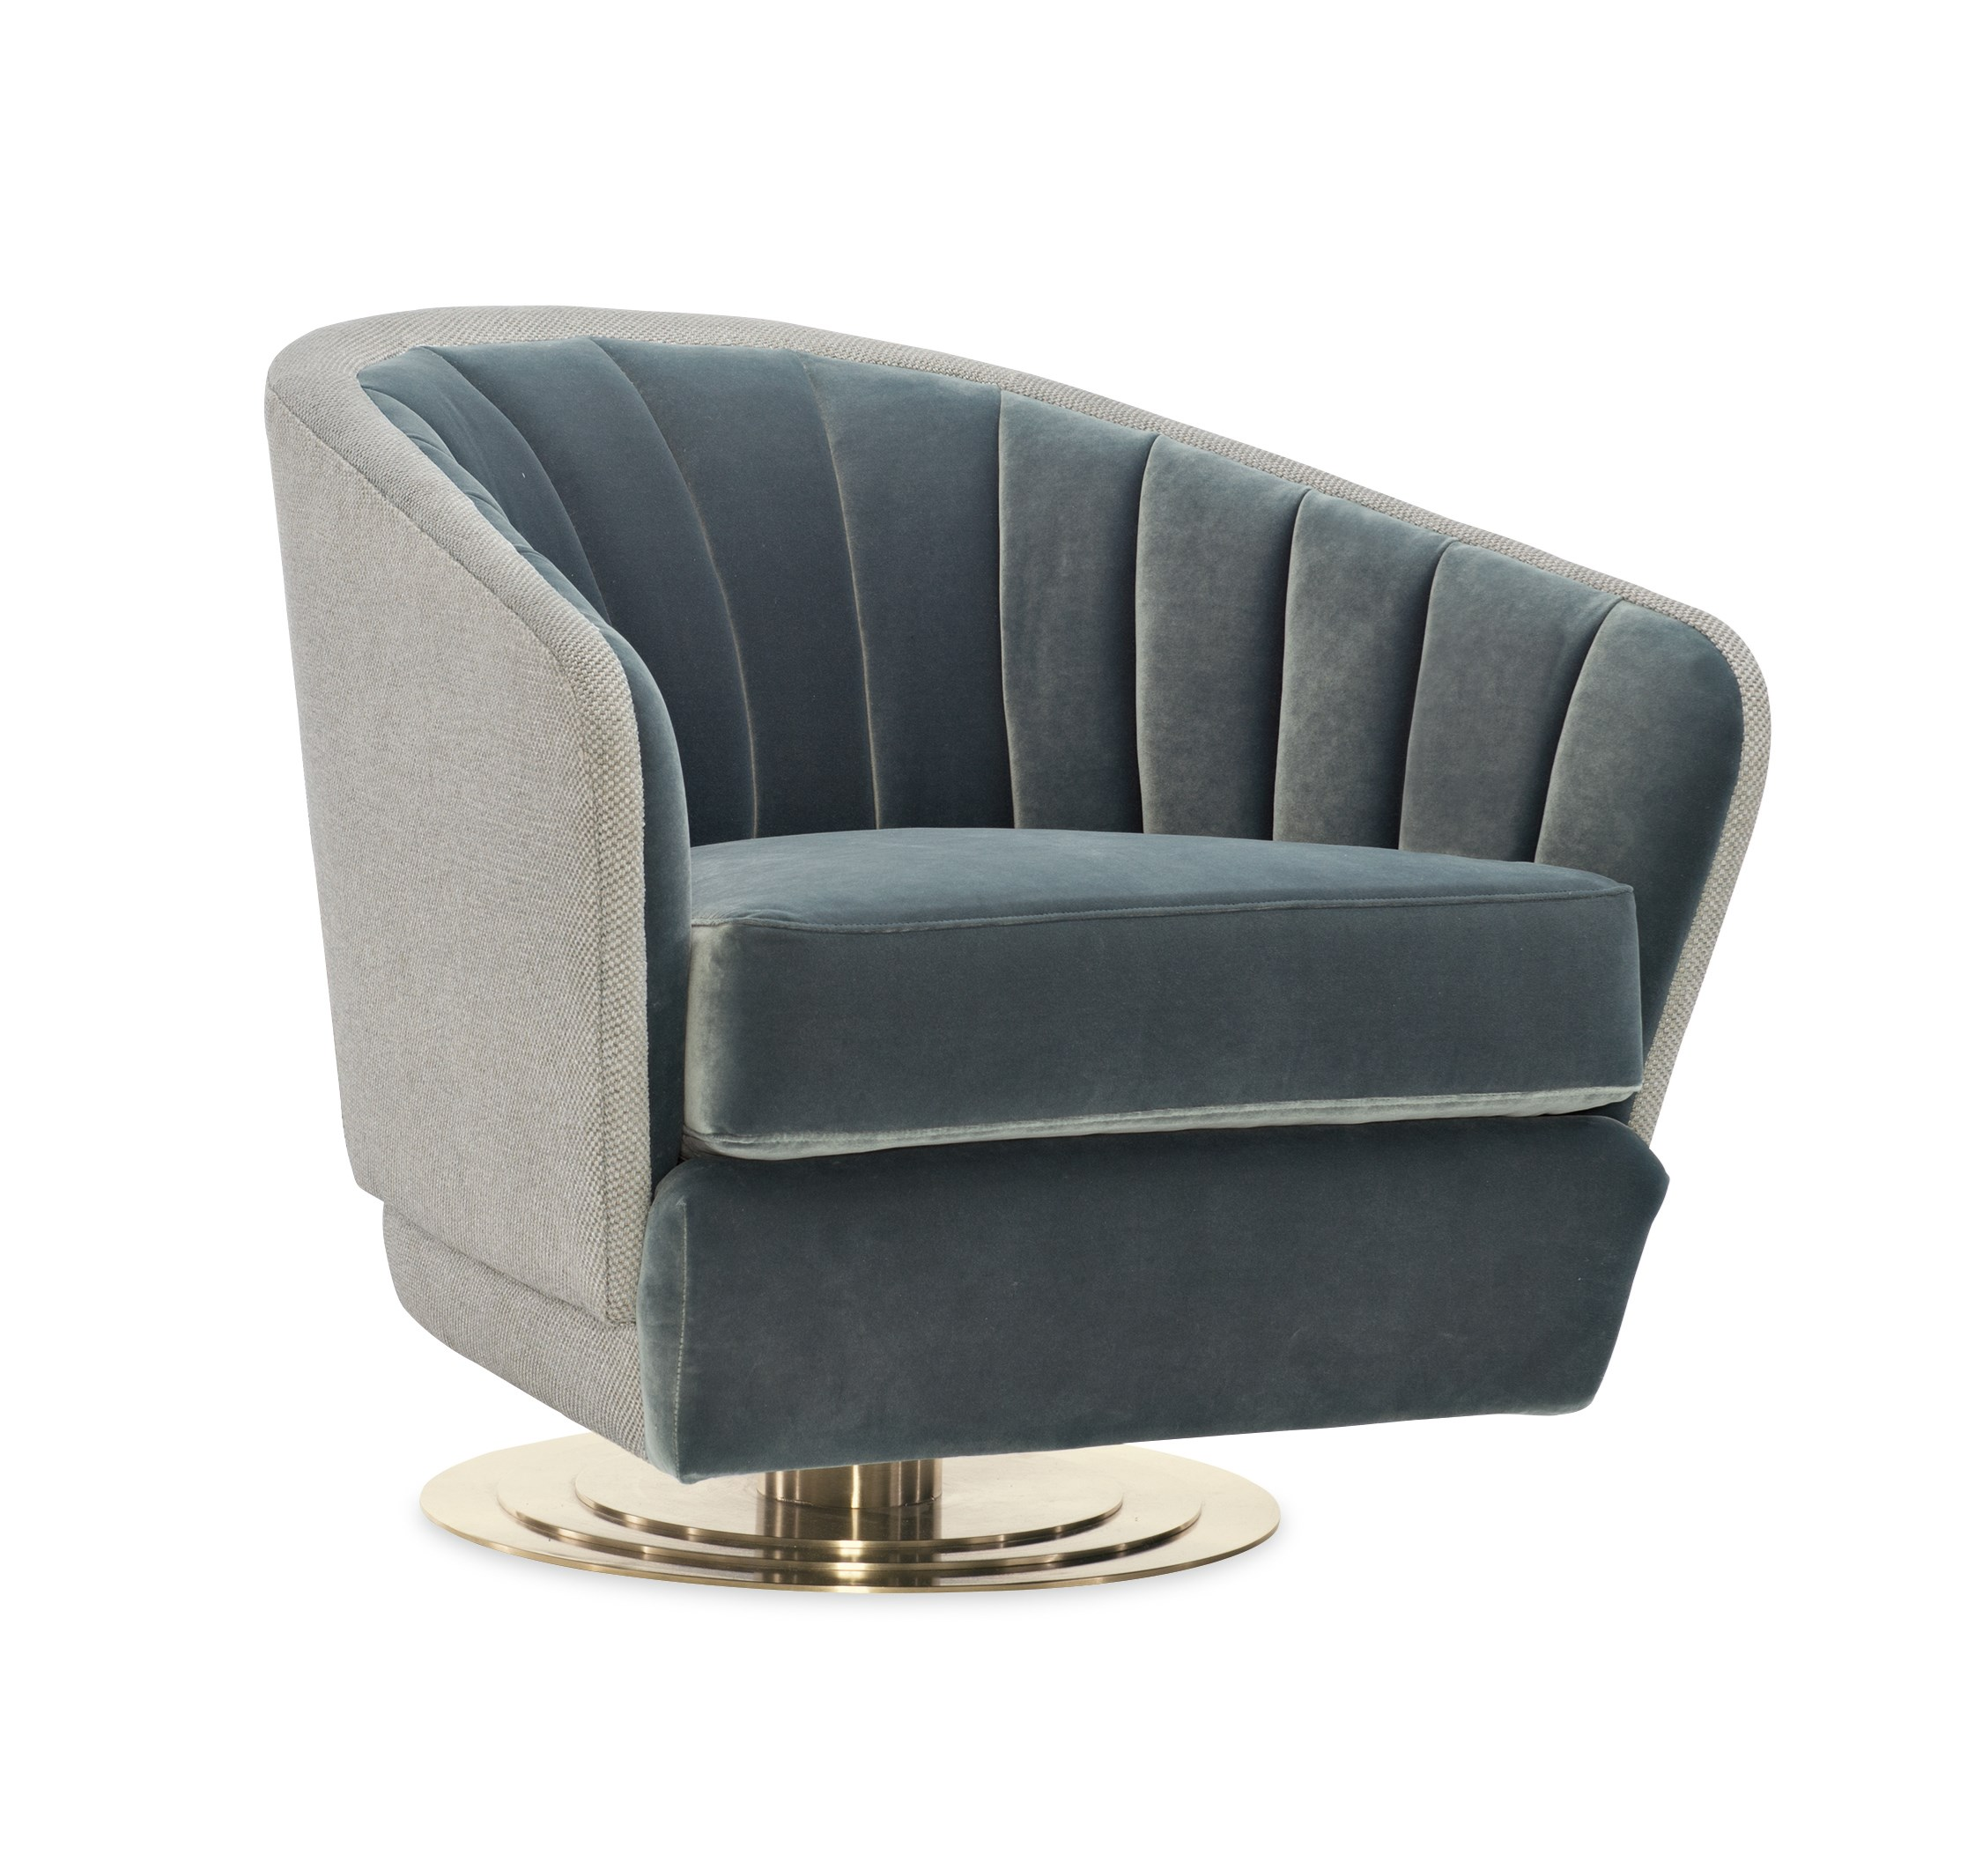 Wondrous Concentric Swivel Chair Caracole Evergreenethics Interior Chair Design Evergreenethicsorg